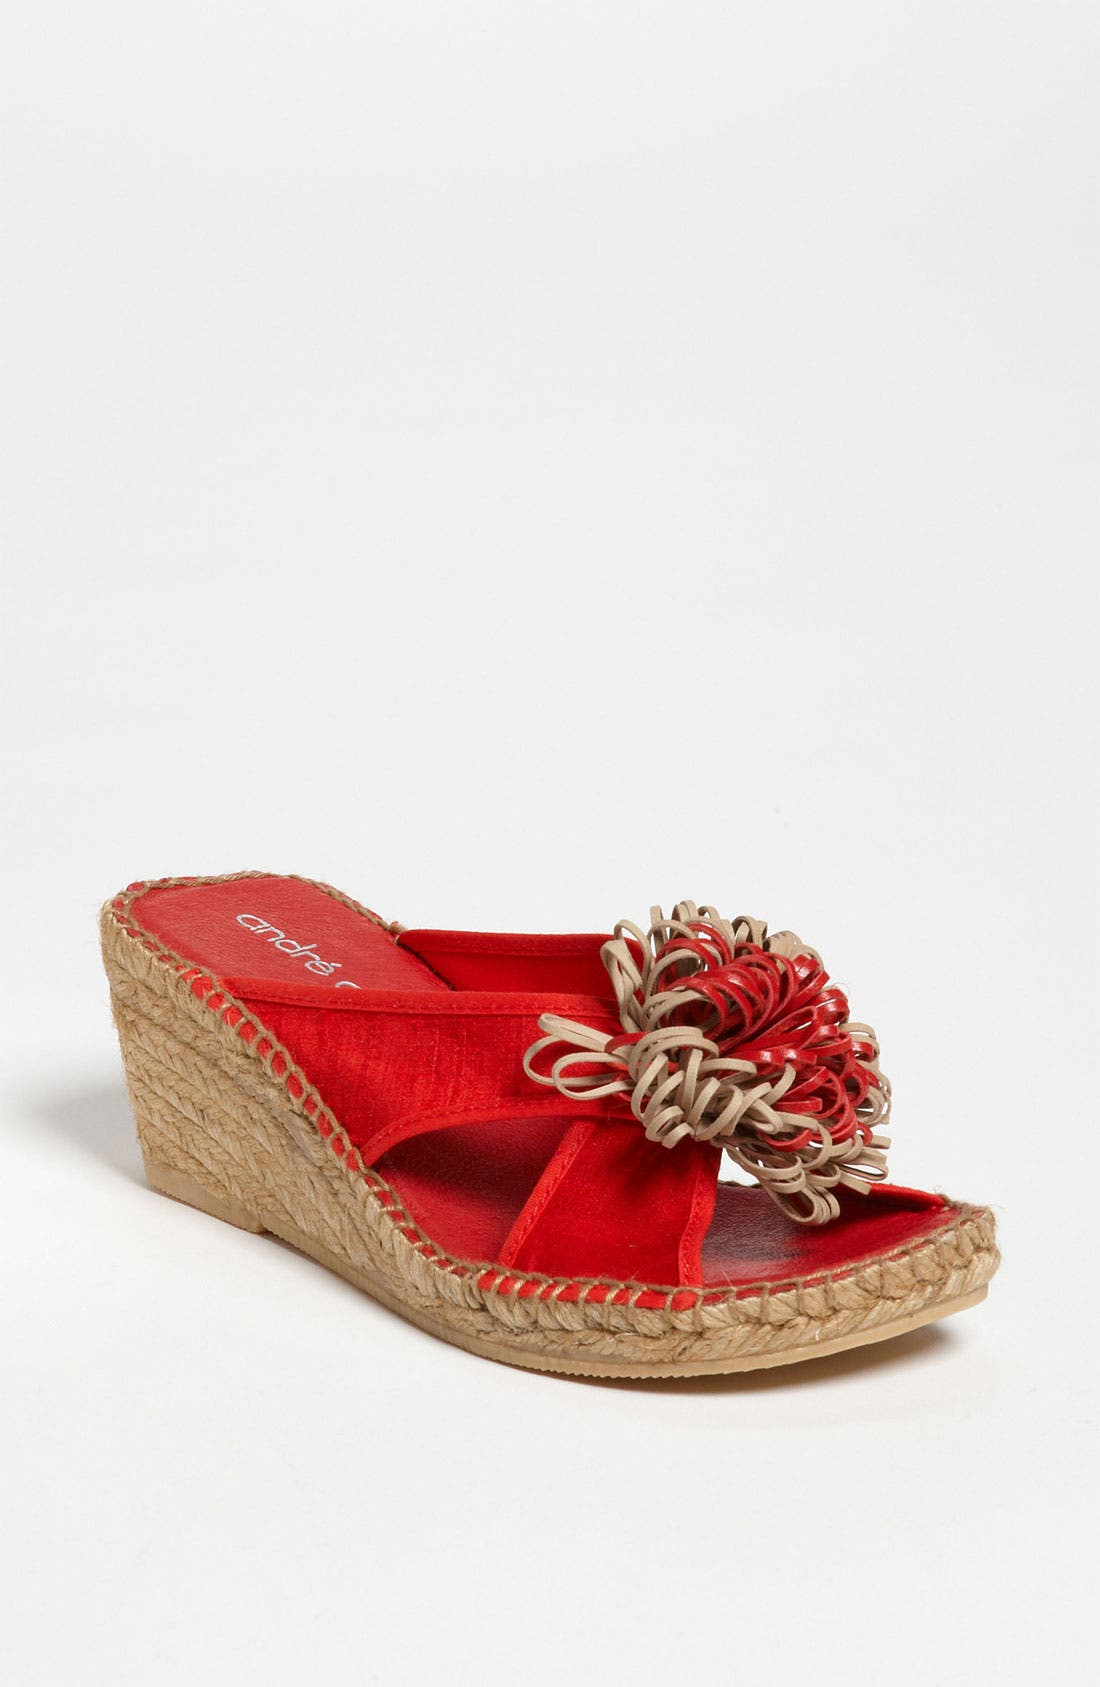 Alternate Image 1 Selected - André Assous 'Reo' Sandal